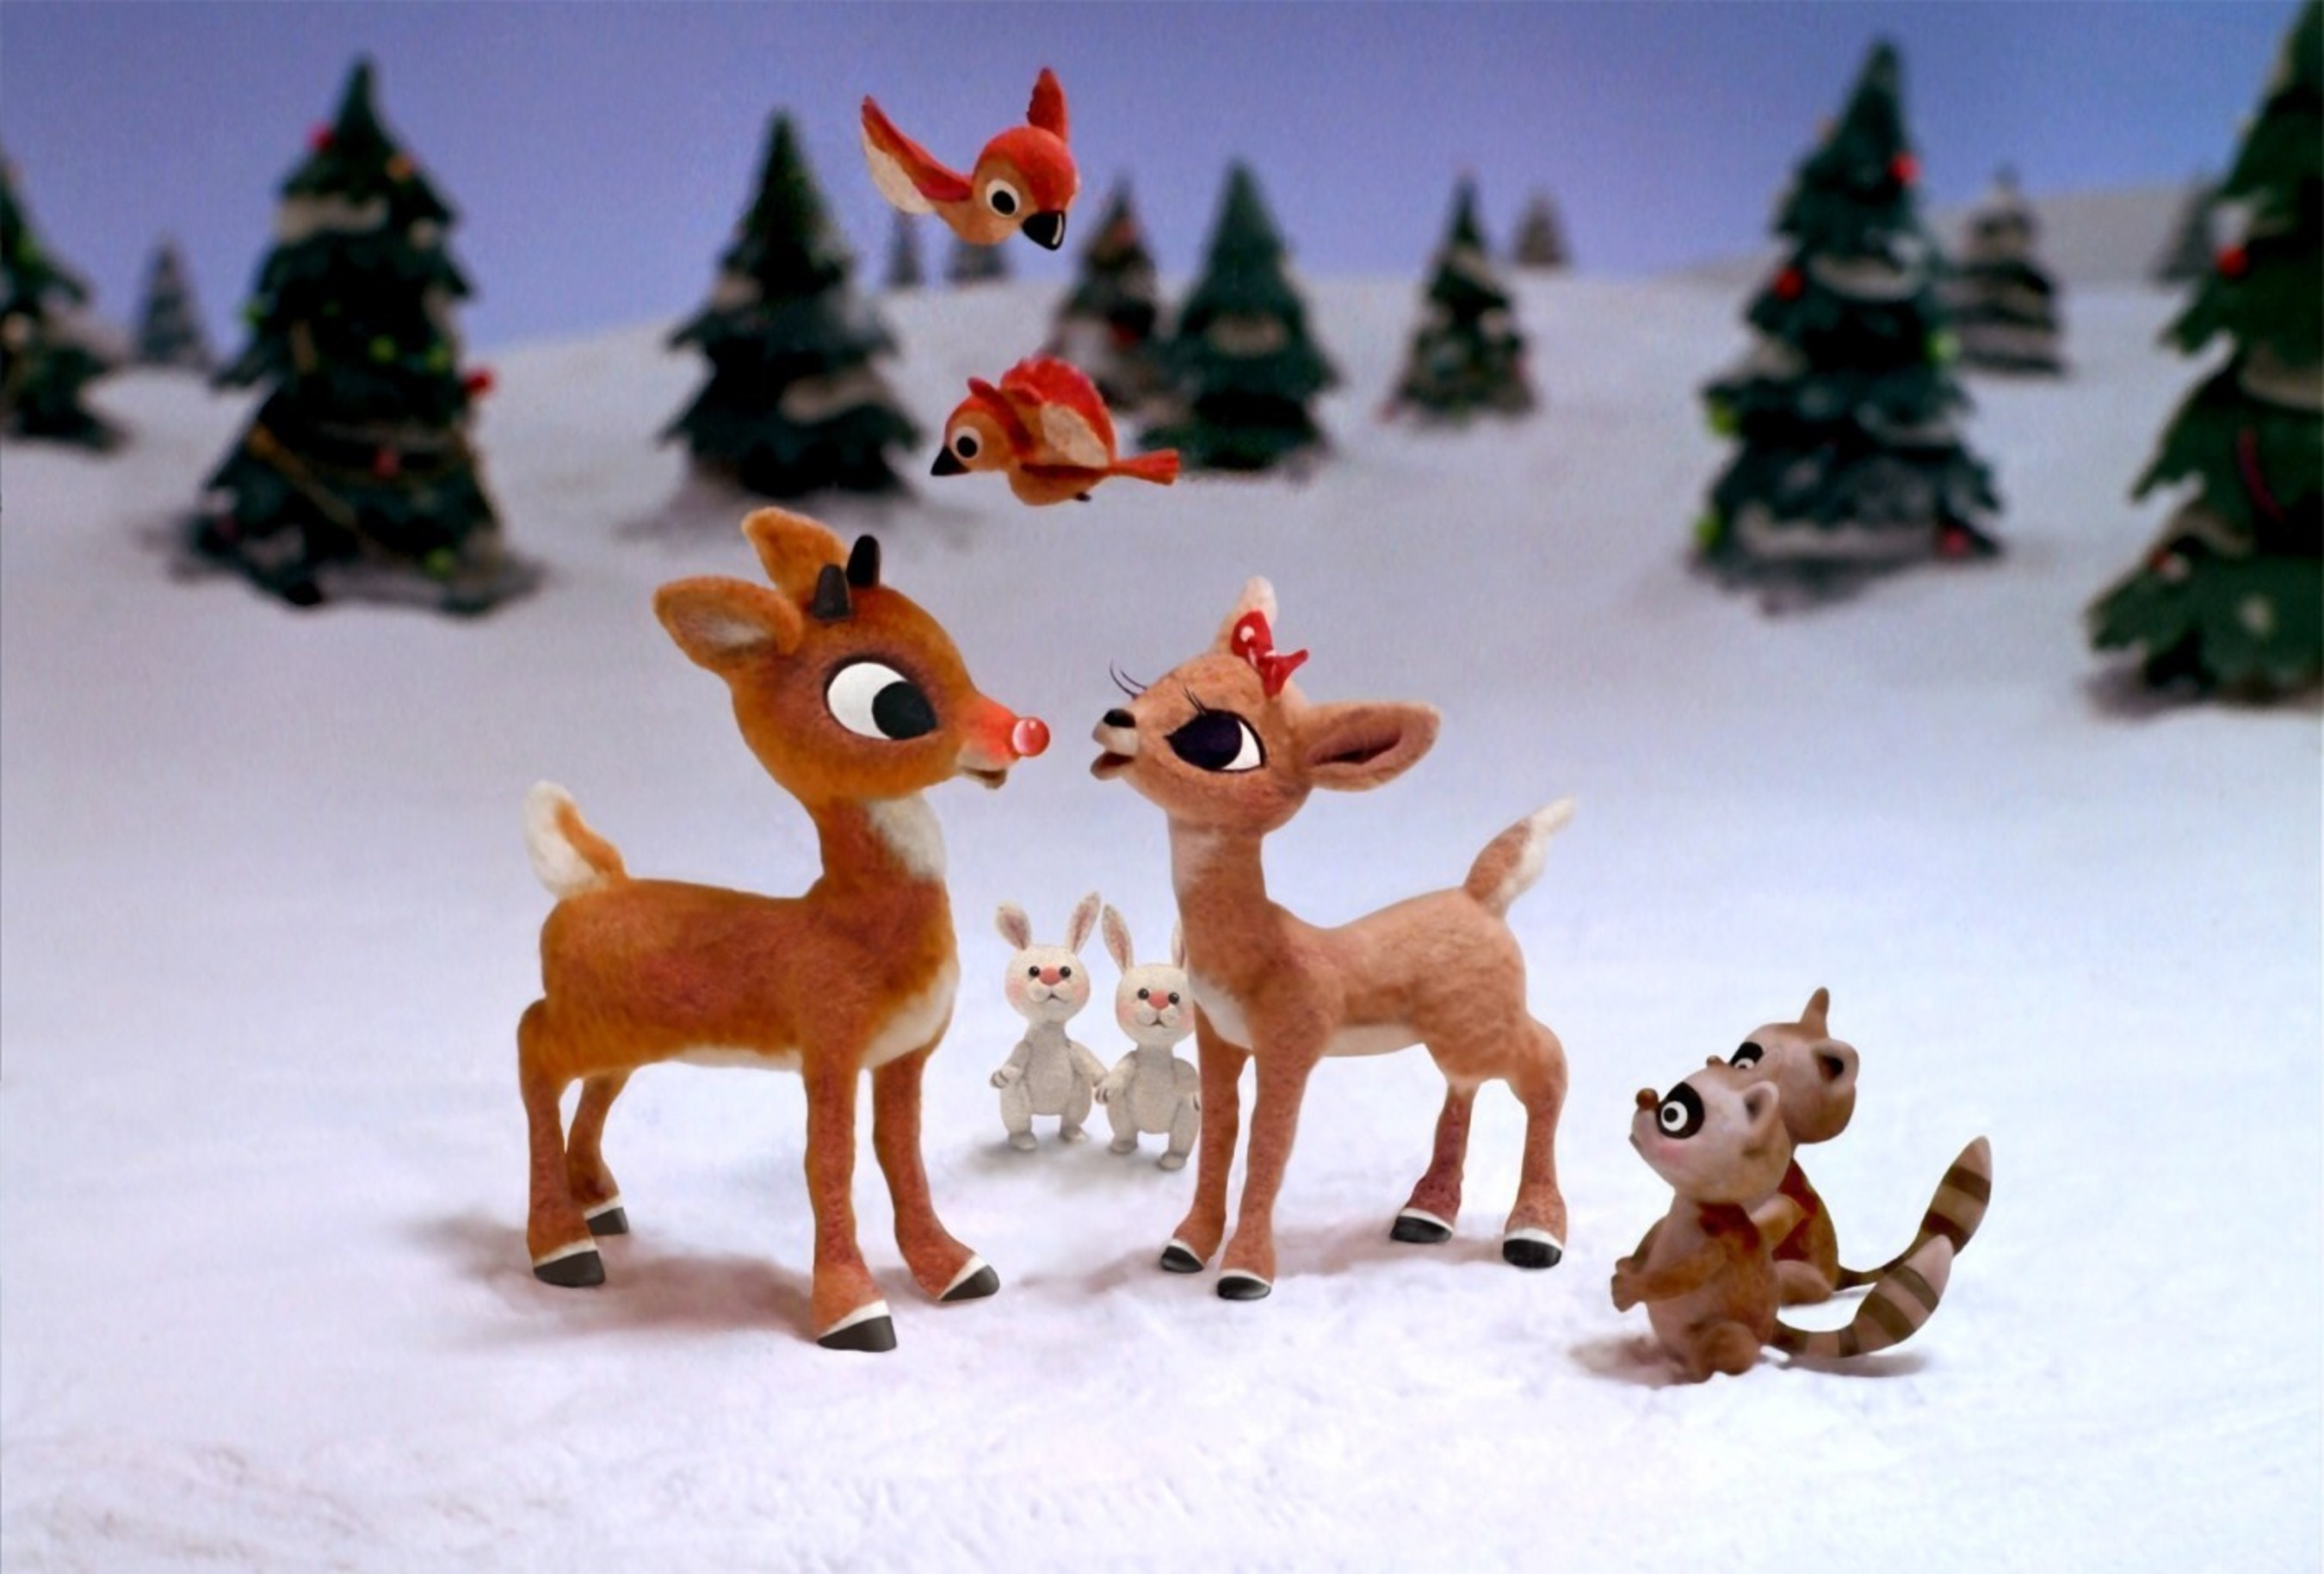 """The classic holiday special """"Rudolph the Red-Nosed Reindeer"""" celebrates its 50th anniversary with a new DVD and Blu-ray, featuring brand-new bonus features.  It's available Nov. 4, 2014.  Rudolph the Red-Nosed Reindeer(c) and (r) The Rudolph Co., L.P.  """"Rudolph the Red-Nosed Reindeer"""" animated program(c) Classic Media, LLC. All rights reserved. (PRNewsFoto/DreamWorks Animation)"""